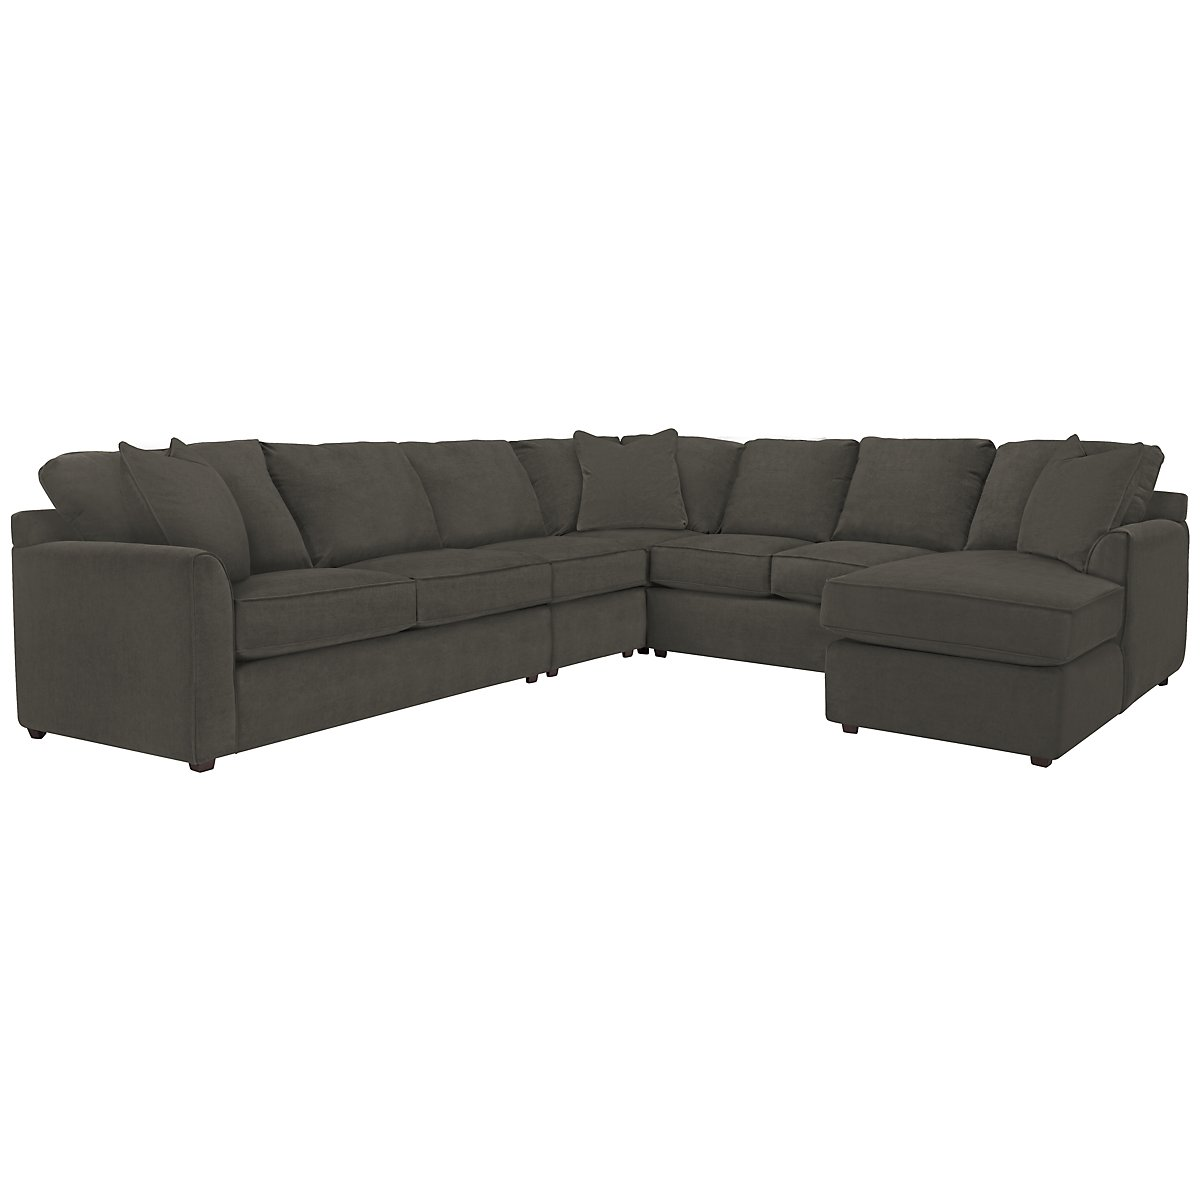 Express3 Dark Gray Microfiber Large Right Chaise Sectional